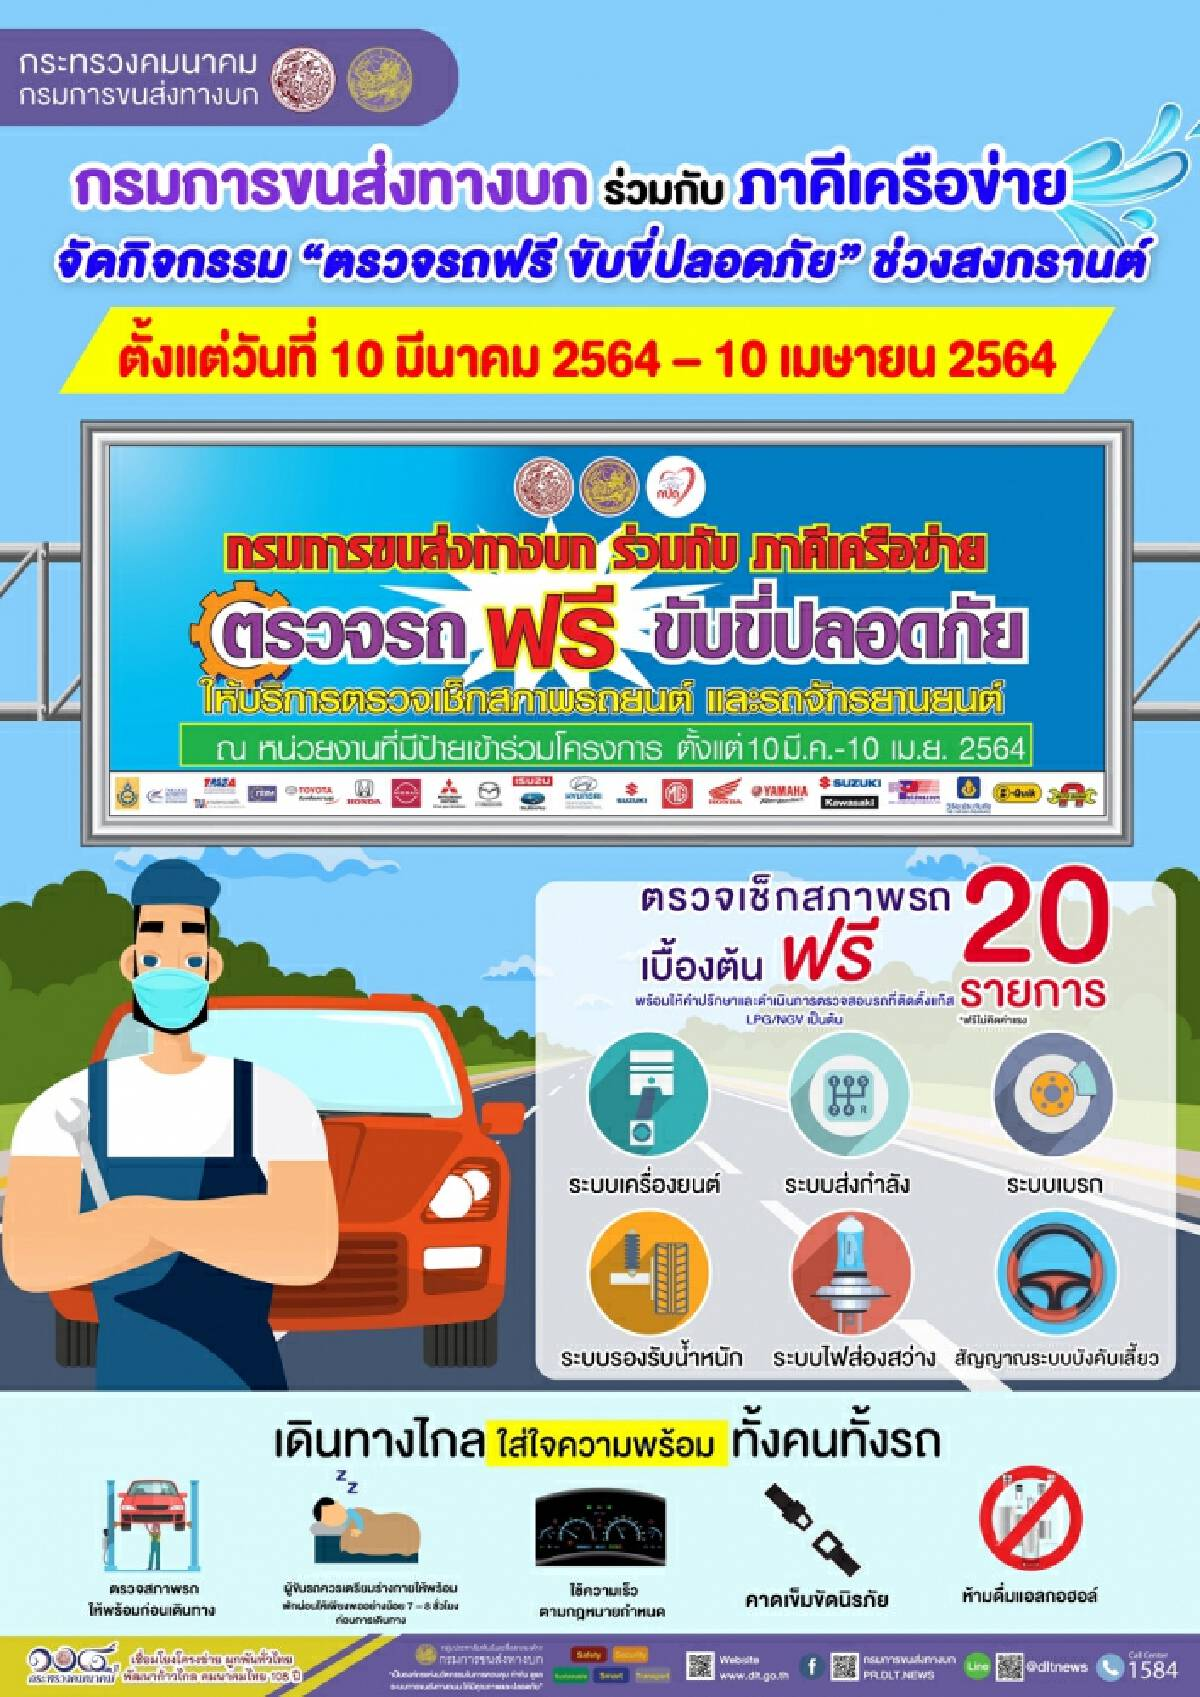 Road safety: free vehicle check-up before Songkran fest